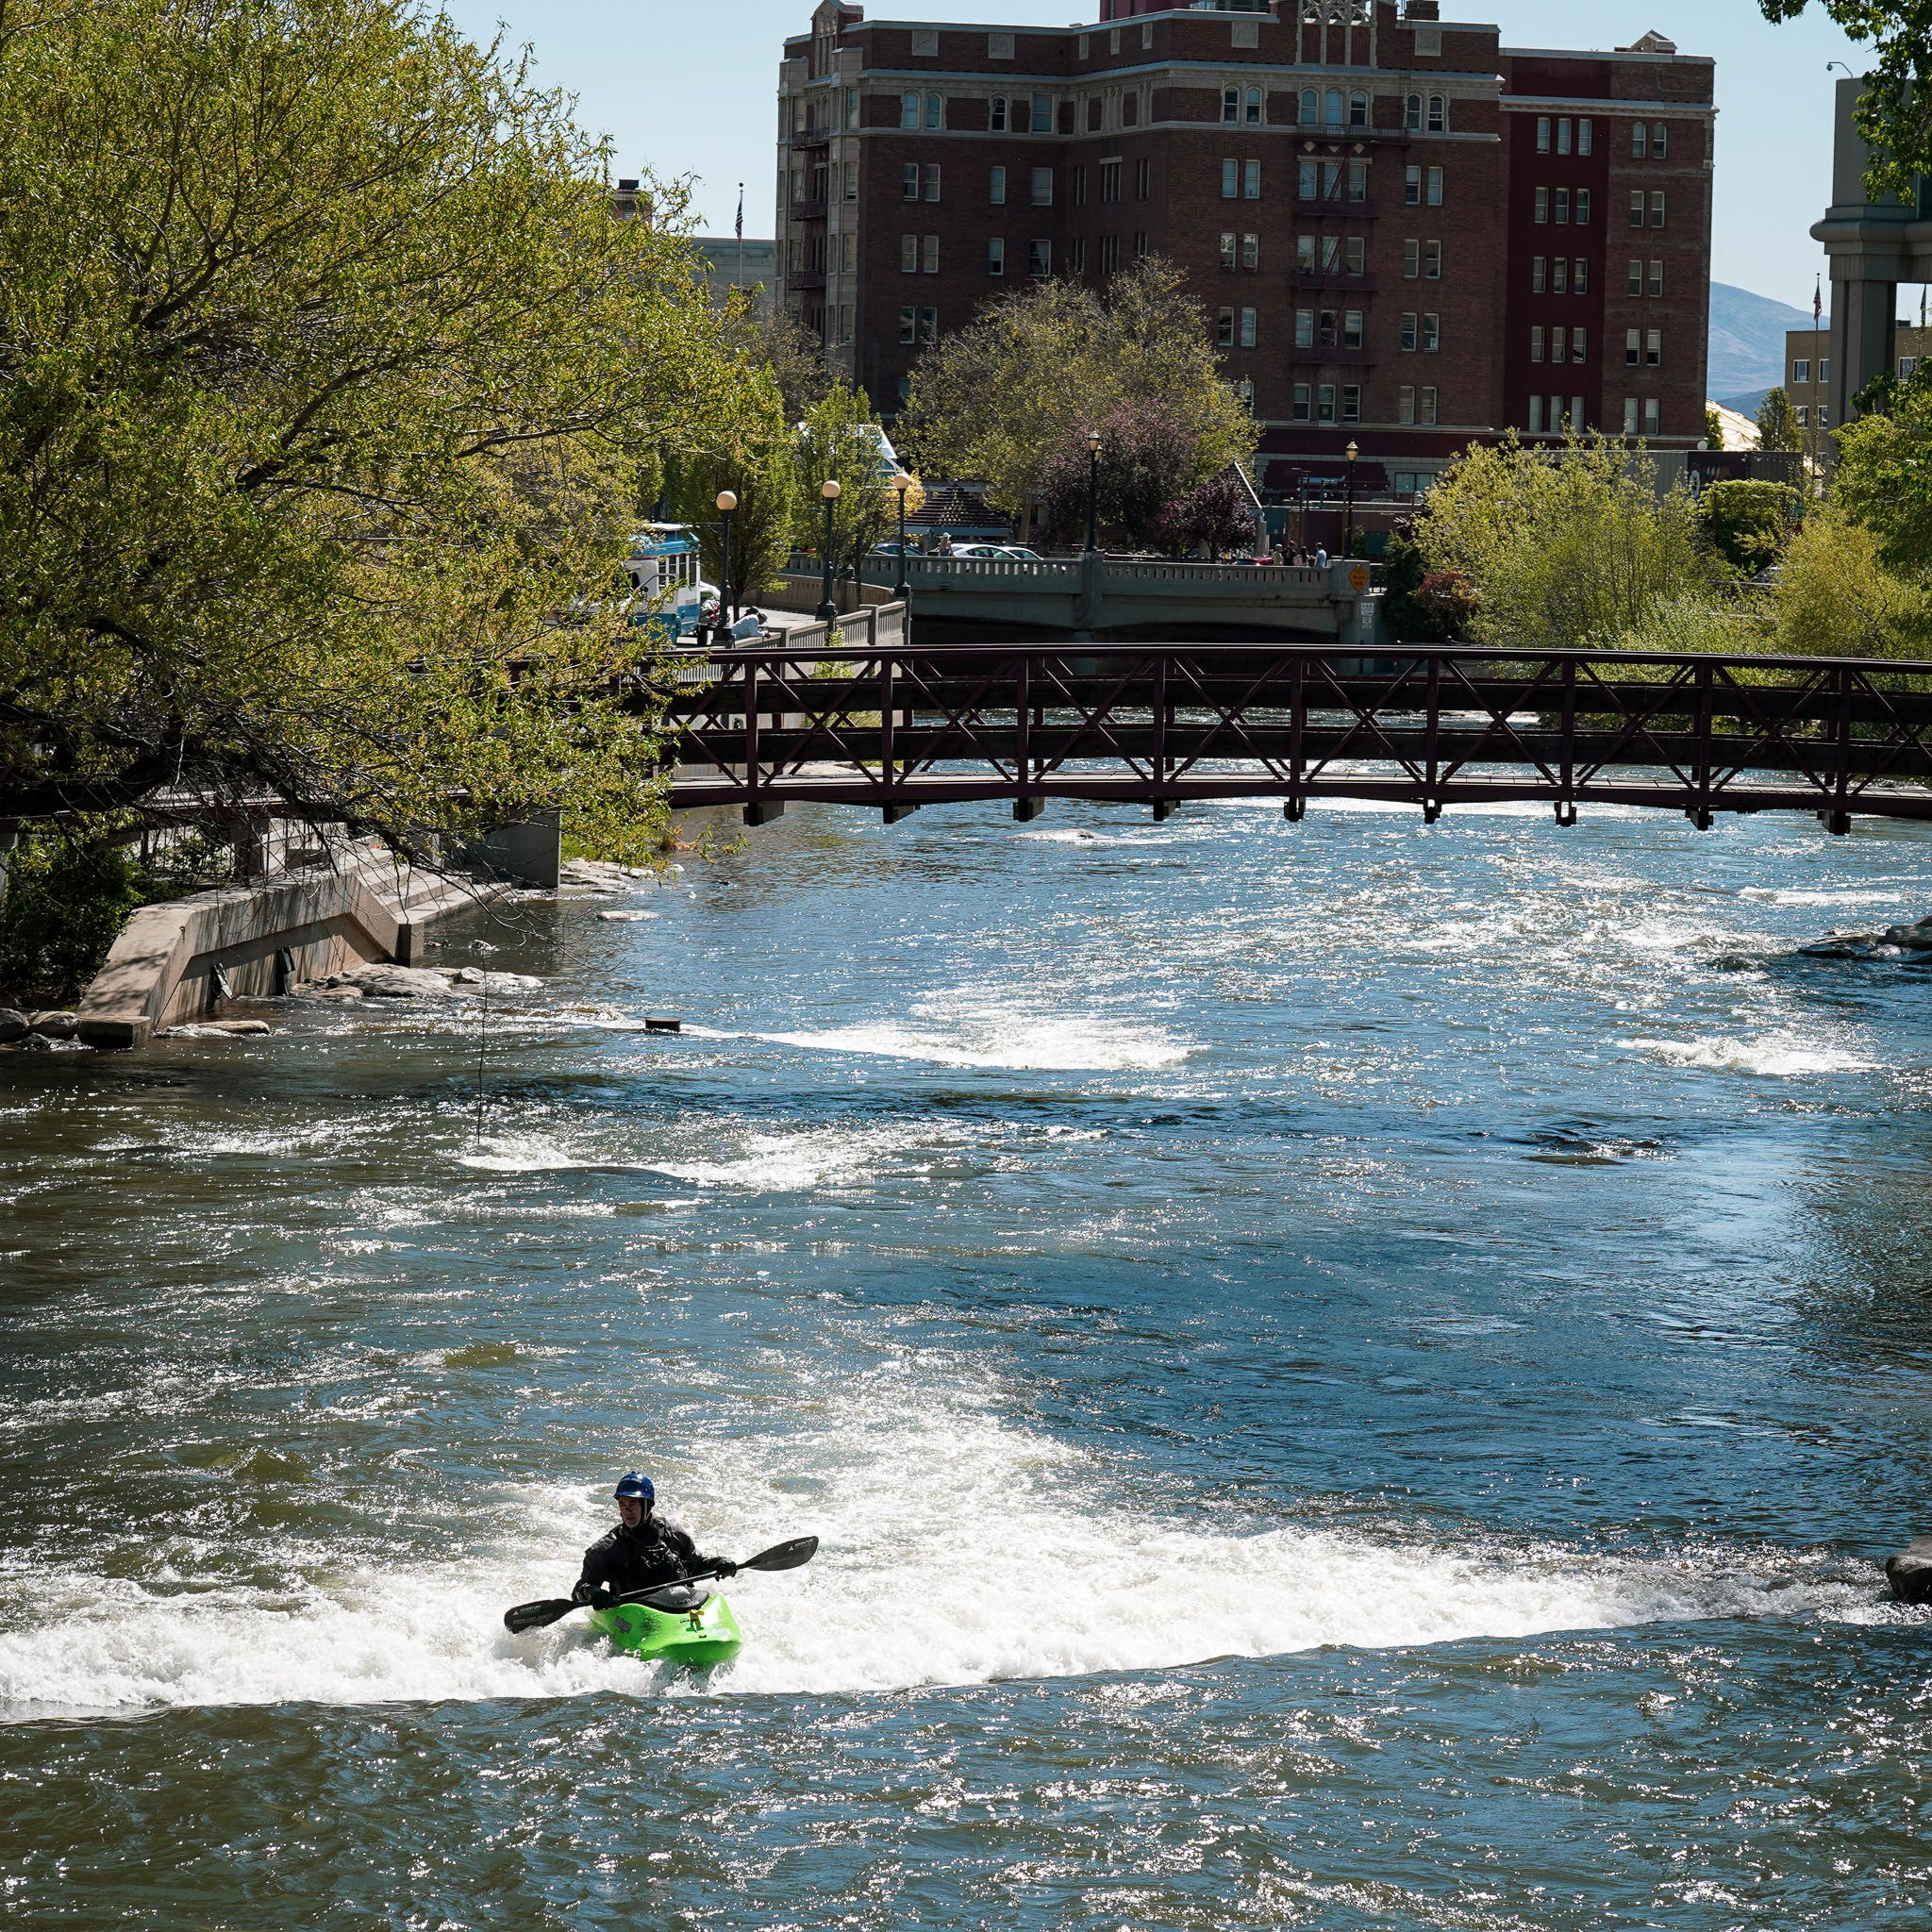 kayaker in the Truckee River Reno downtown